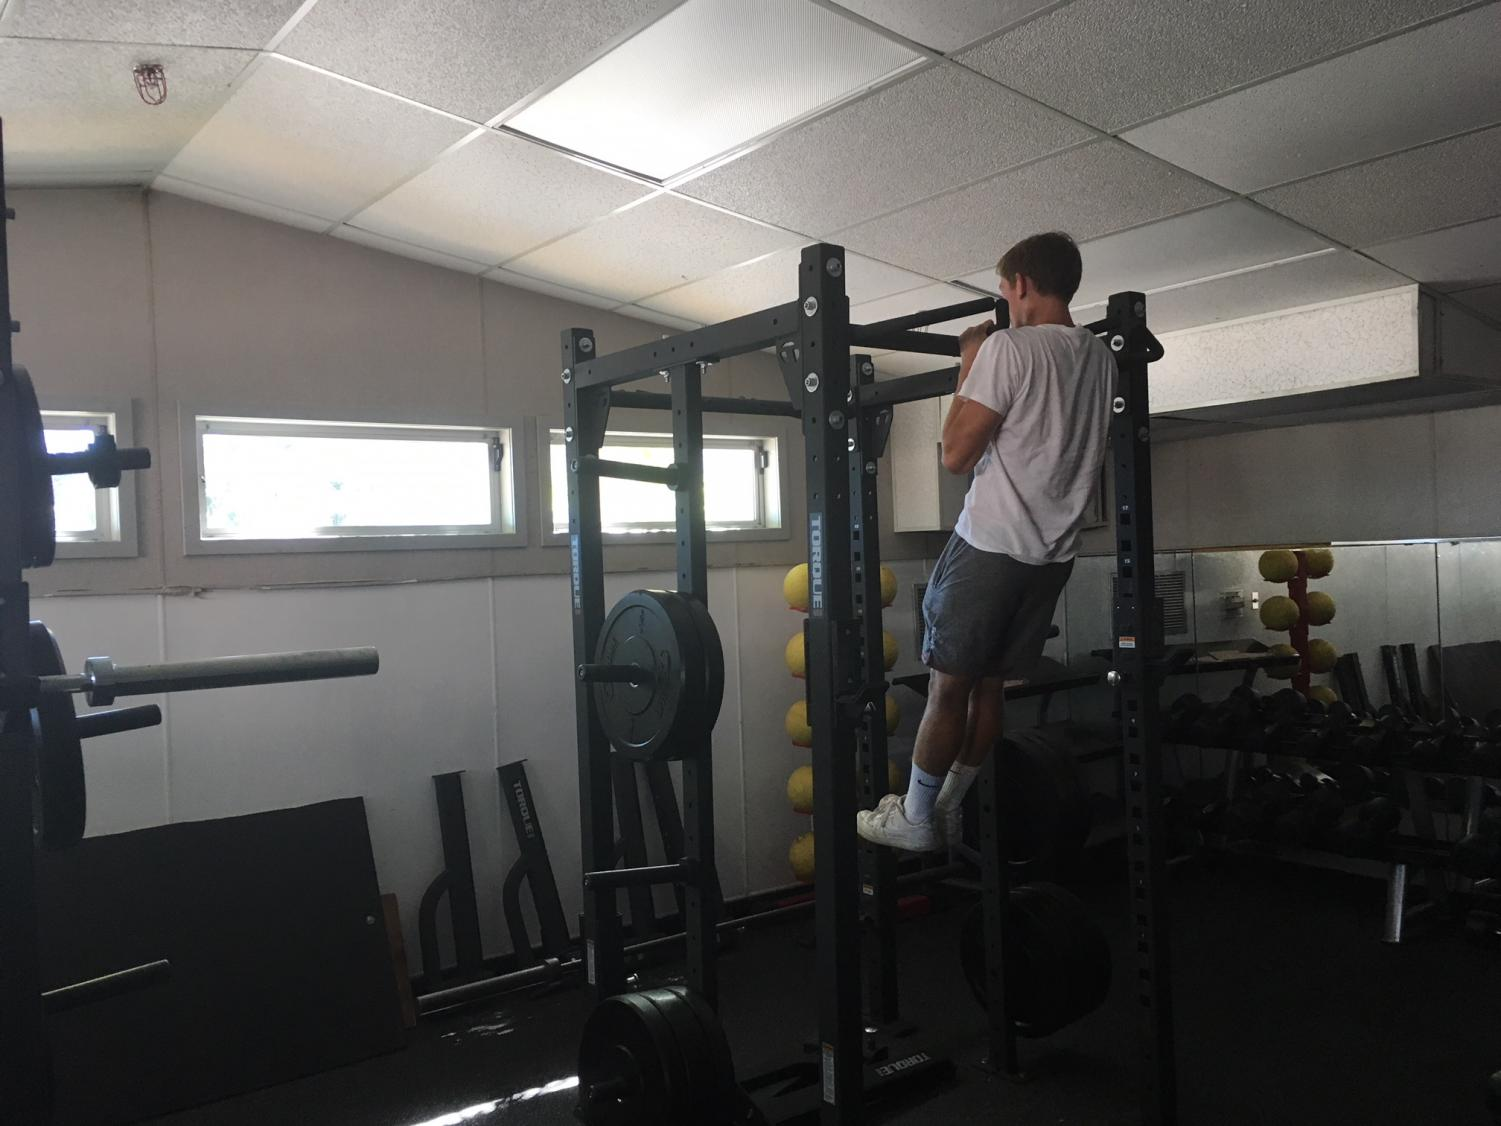 Senior+football+player+Chris+Fuegner+does+a+pull-up+during+an+after+school+workout